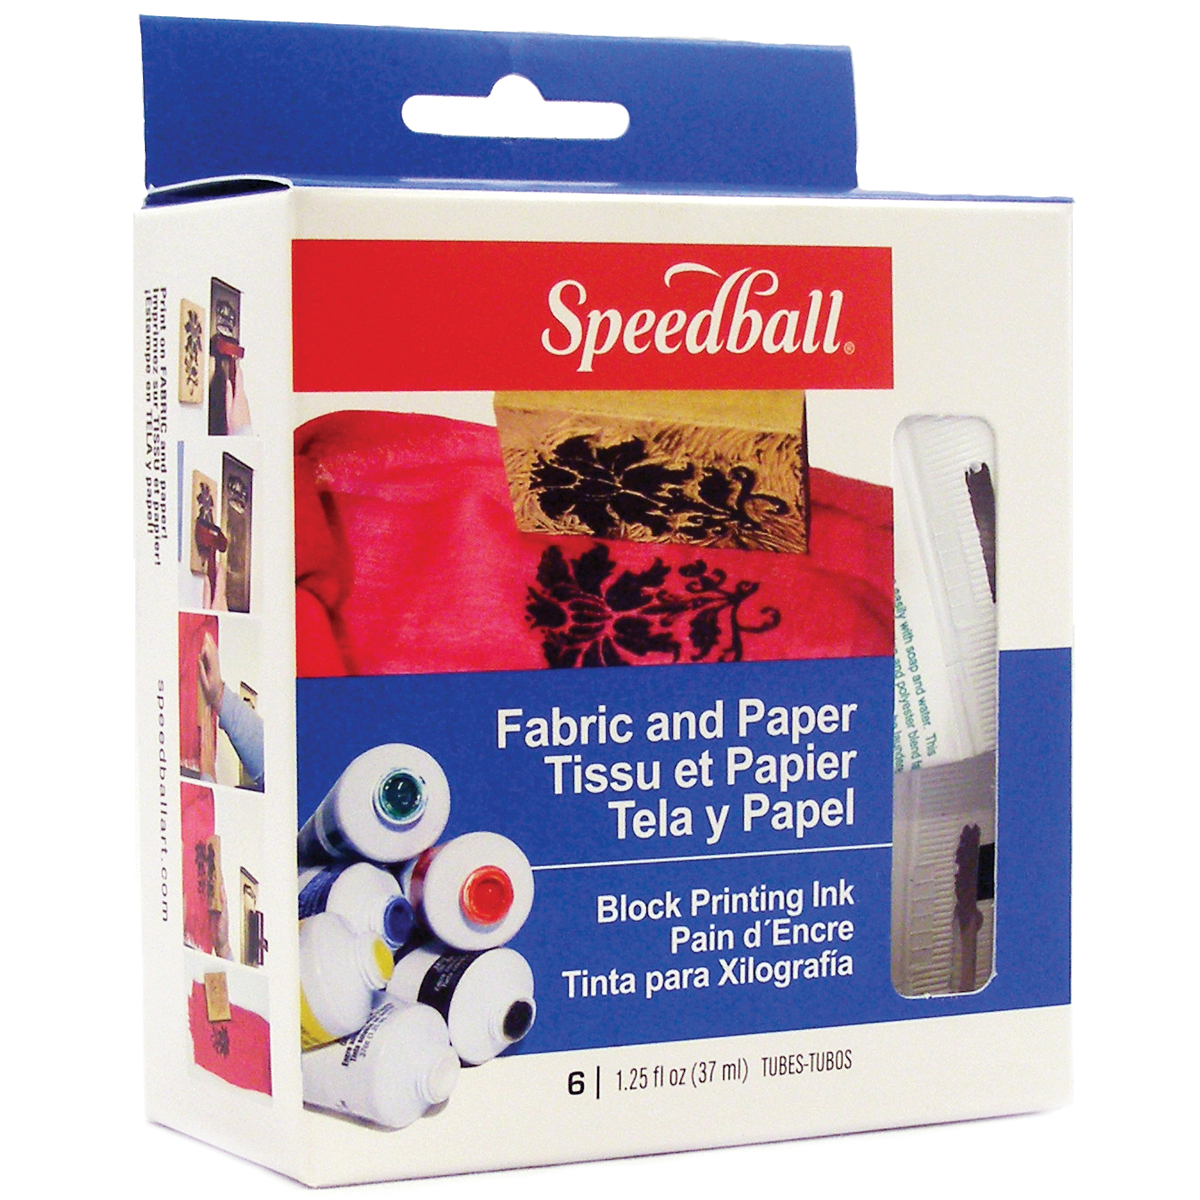 Speedball Block Printing Kit for Fabric & Paper